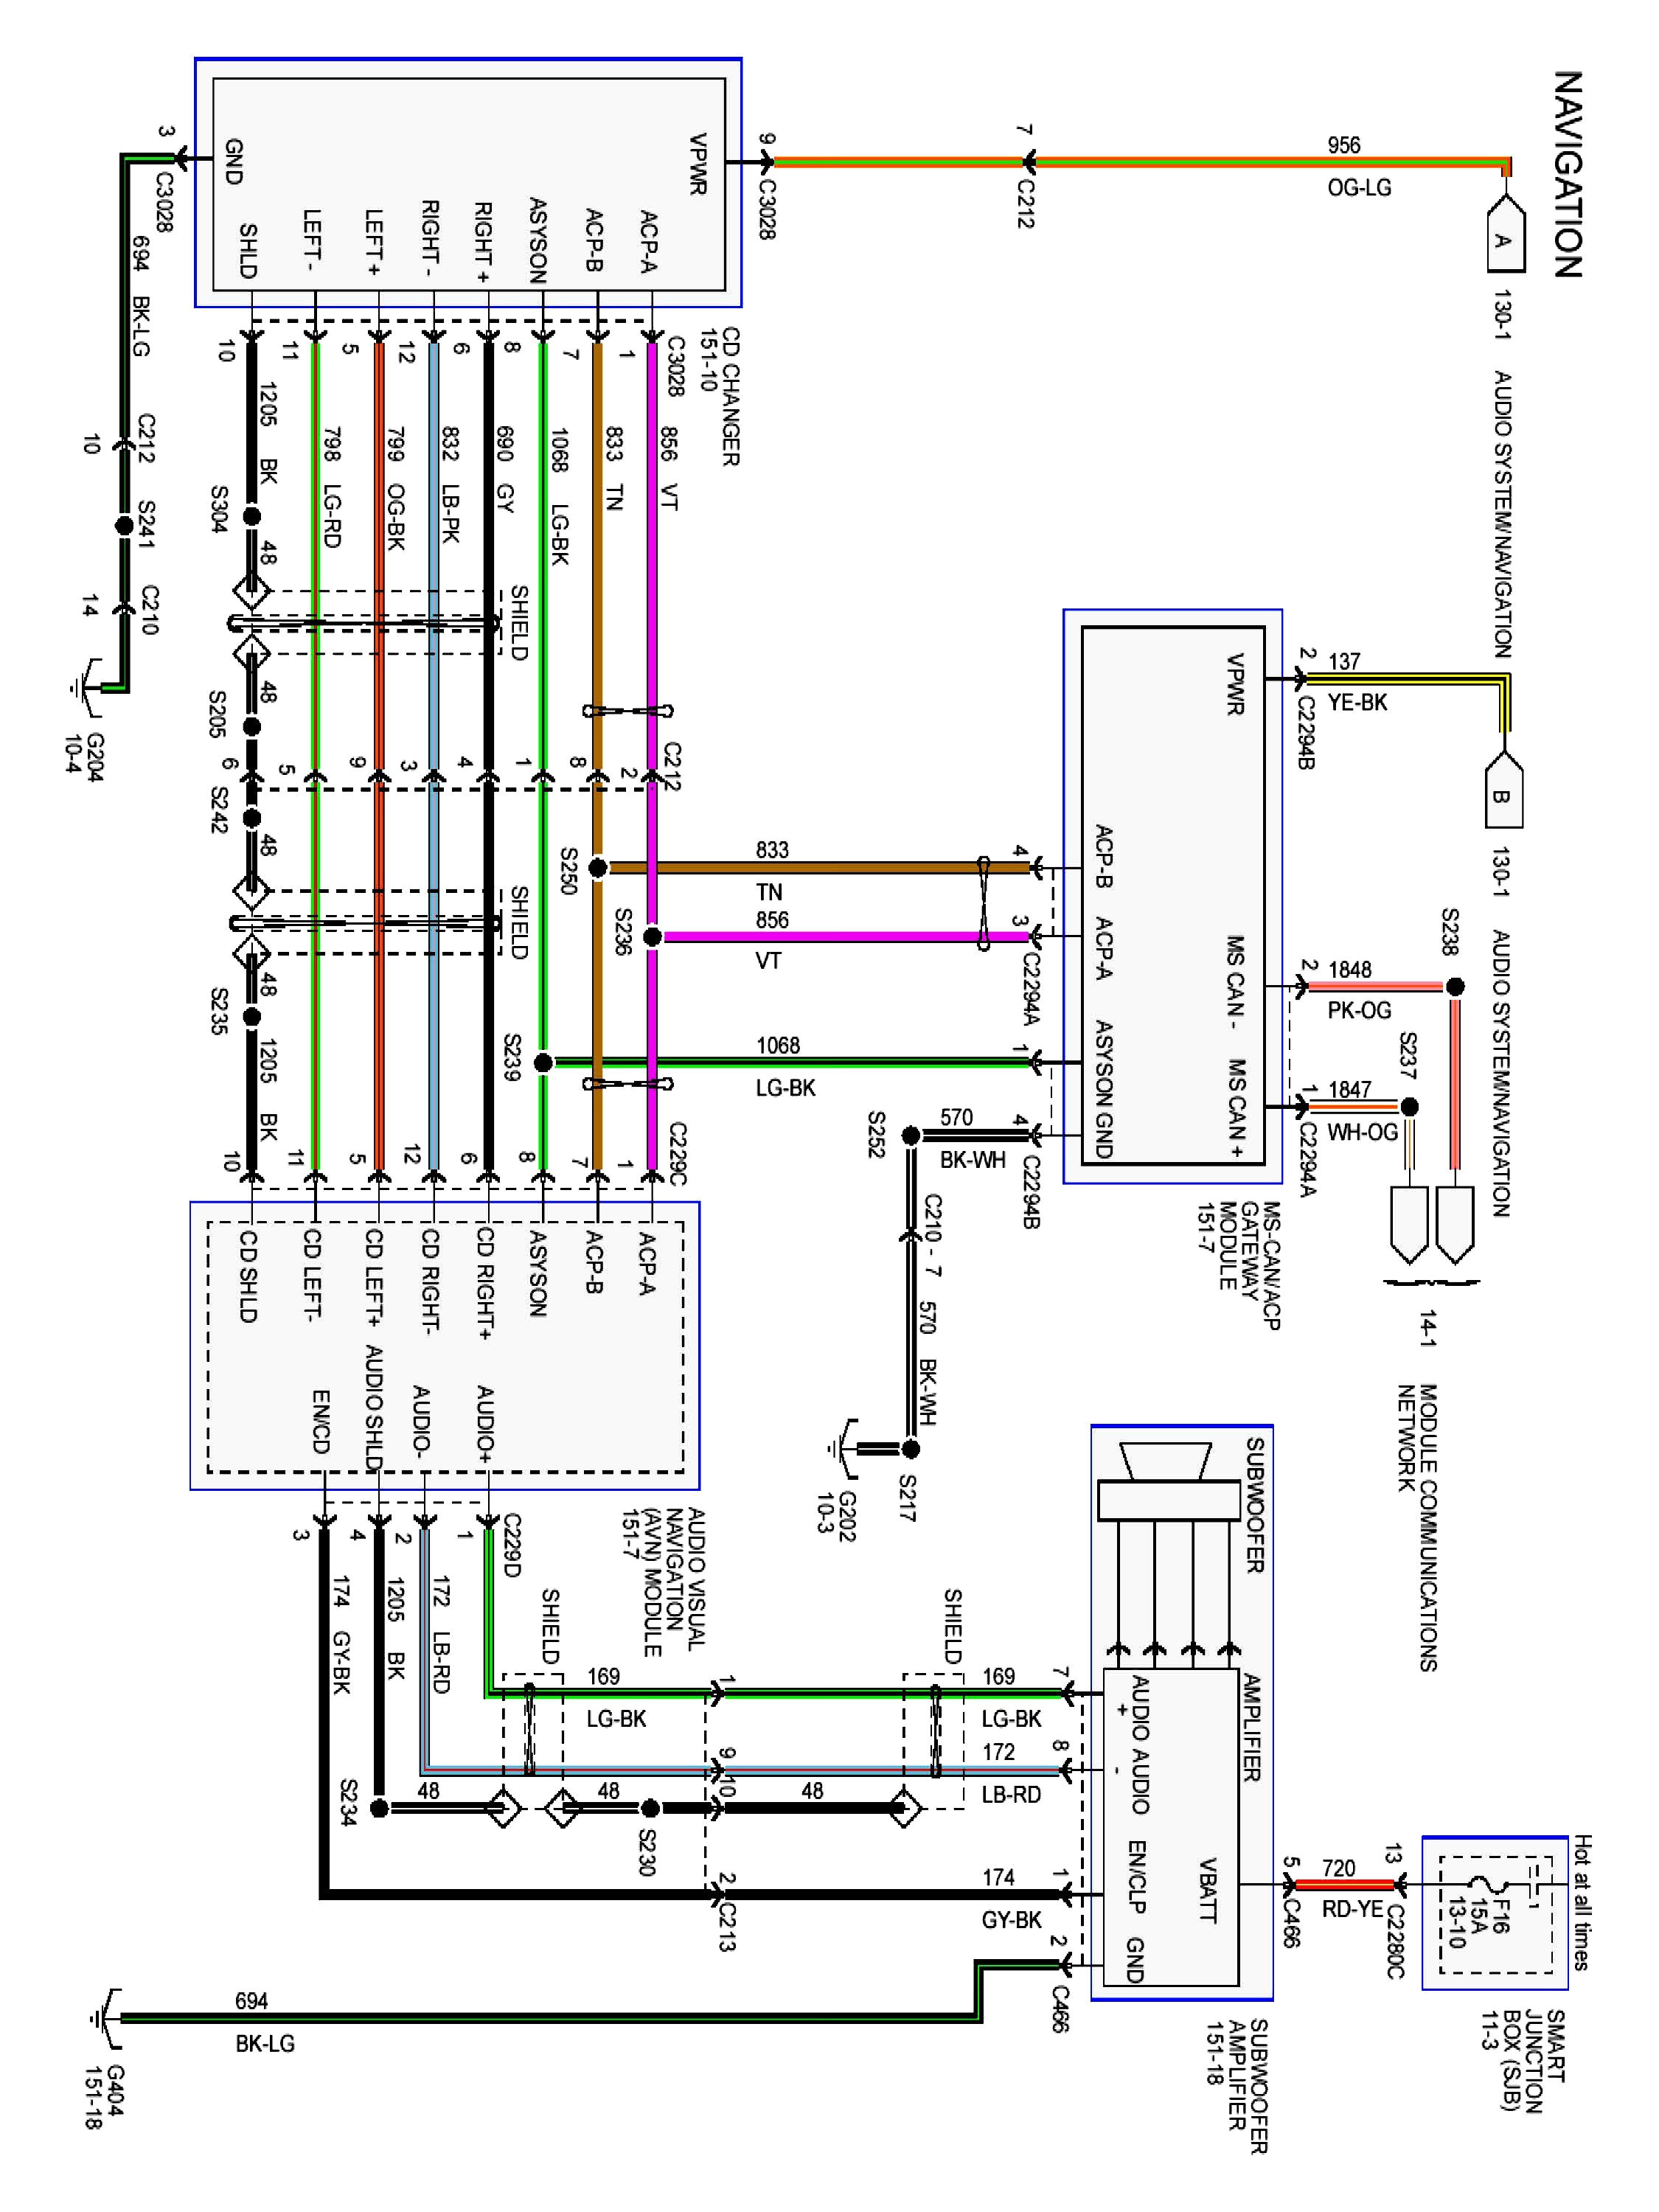 07 f550 wiring diagram for trailer schematics wiring diagrams u2022 rh marapolsa co 2001 ford f550 trailer wiring diagram